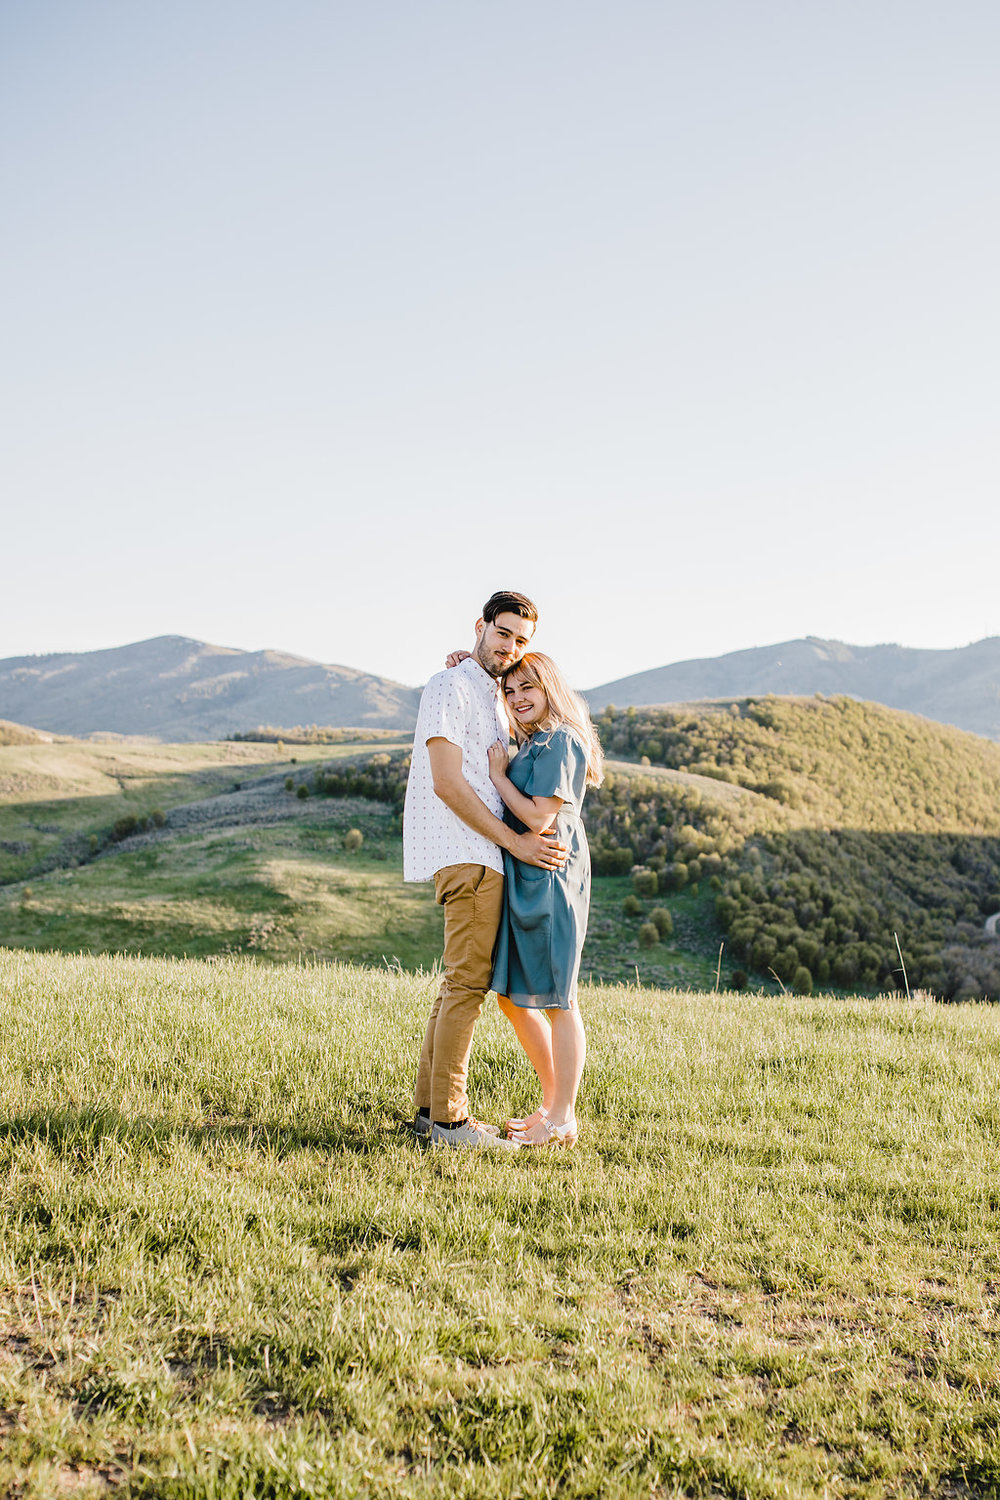 professional engagement photography northern utah cache valley mountains rolling hills outdoors adventurous couple